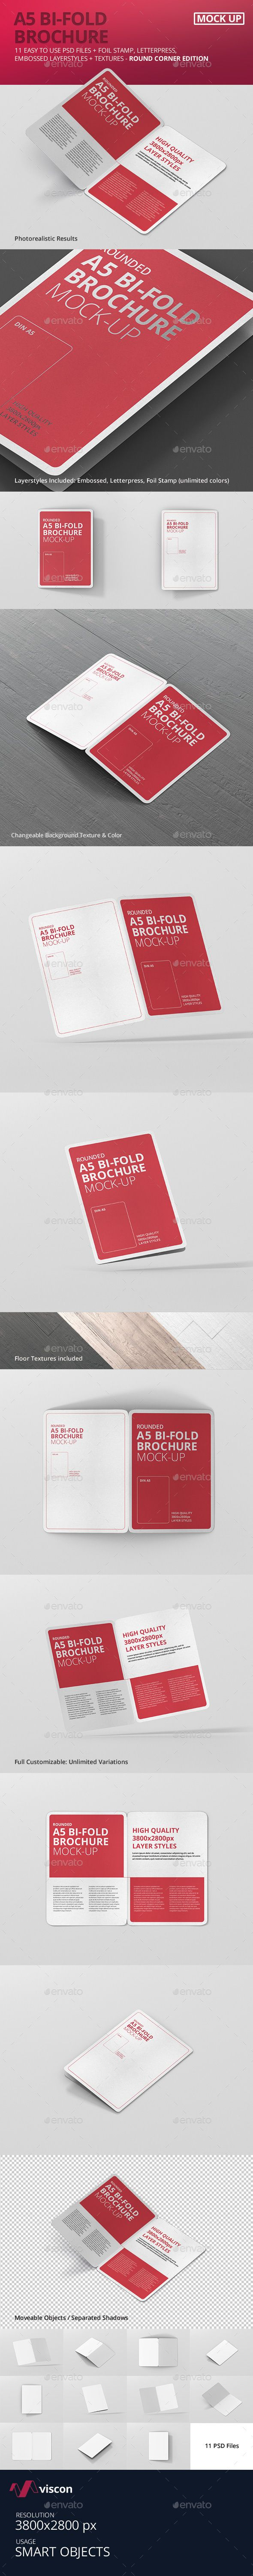 A5 Bi-Fold Brochure Mock-Up - Round Corner. Download here: graphicriver.net/...